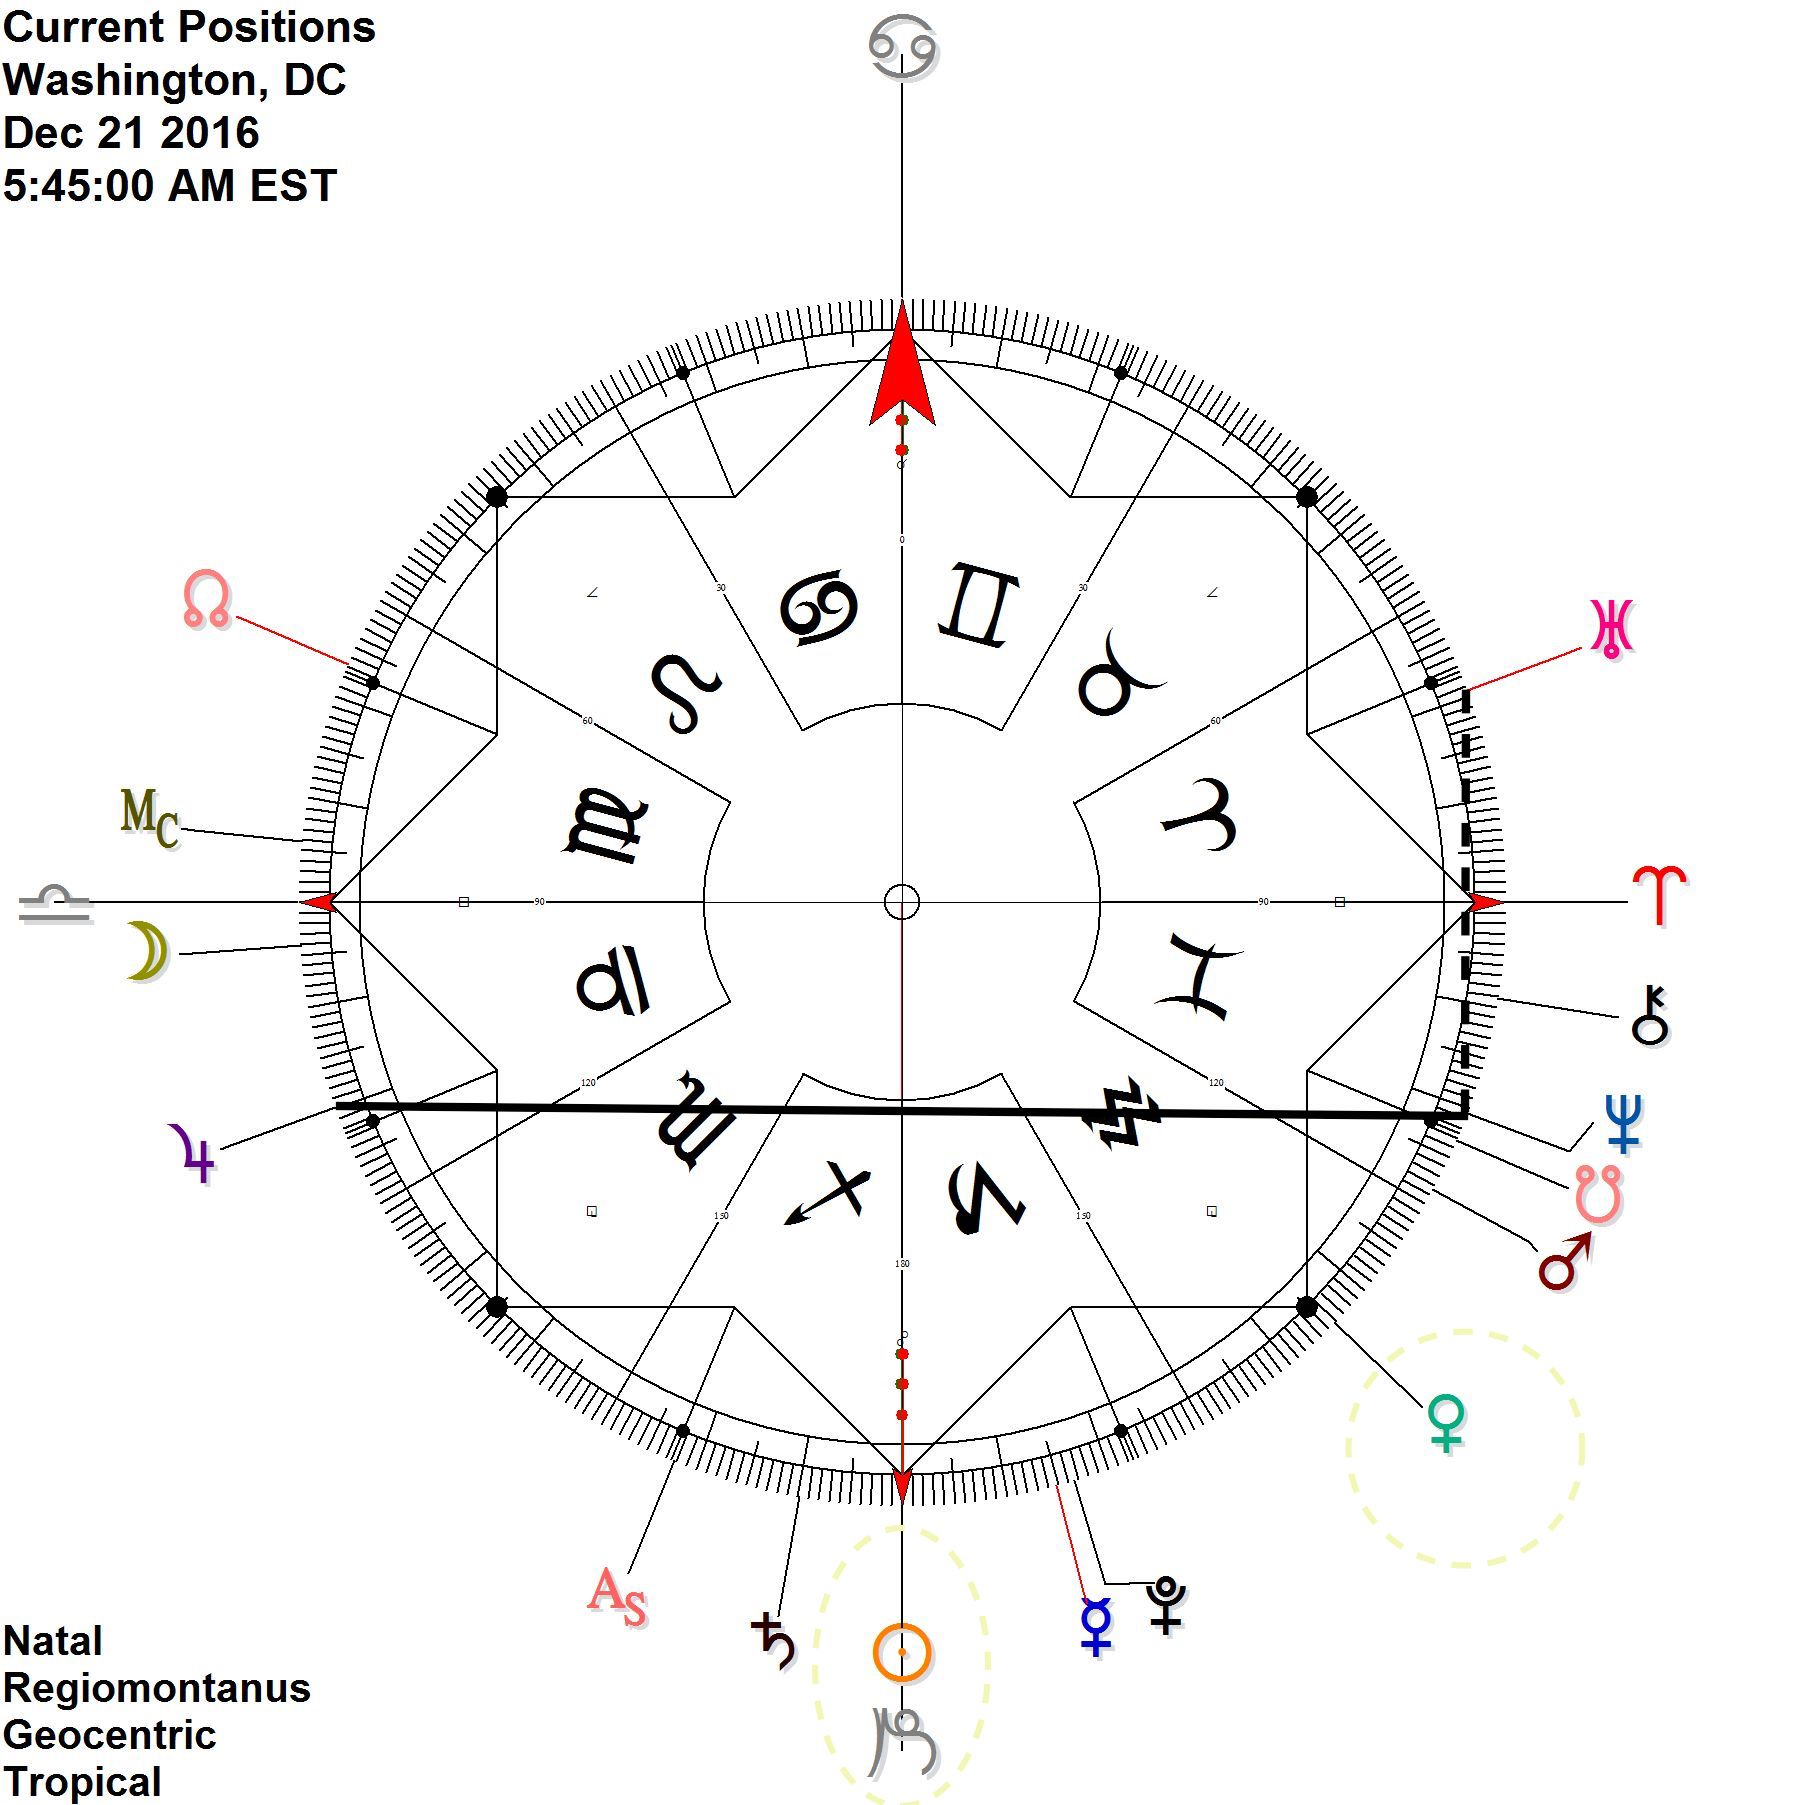 2016 Capricorn Ingress  Long-standing signatures: Uranus Neptune + Jupiter Neptune Venus on cardinal axis @ 15 fixed (15AQU49) Saturn advances on Ascendant for Washington, DC  (again)